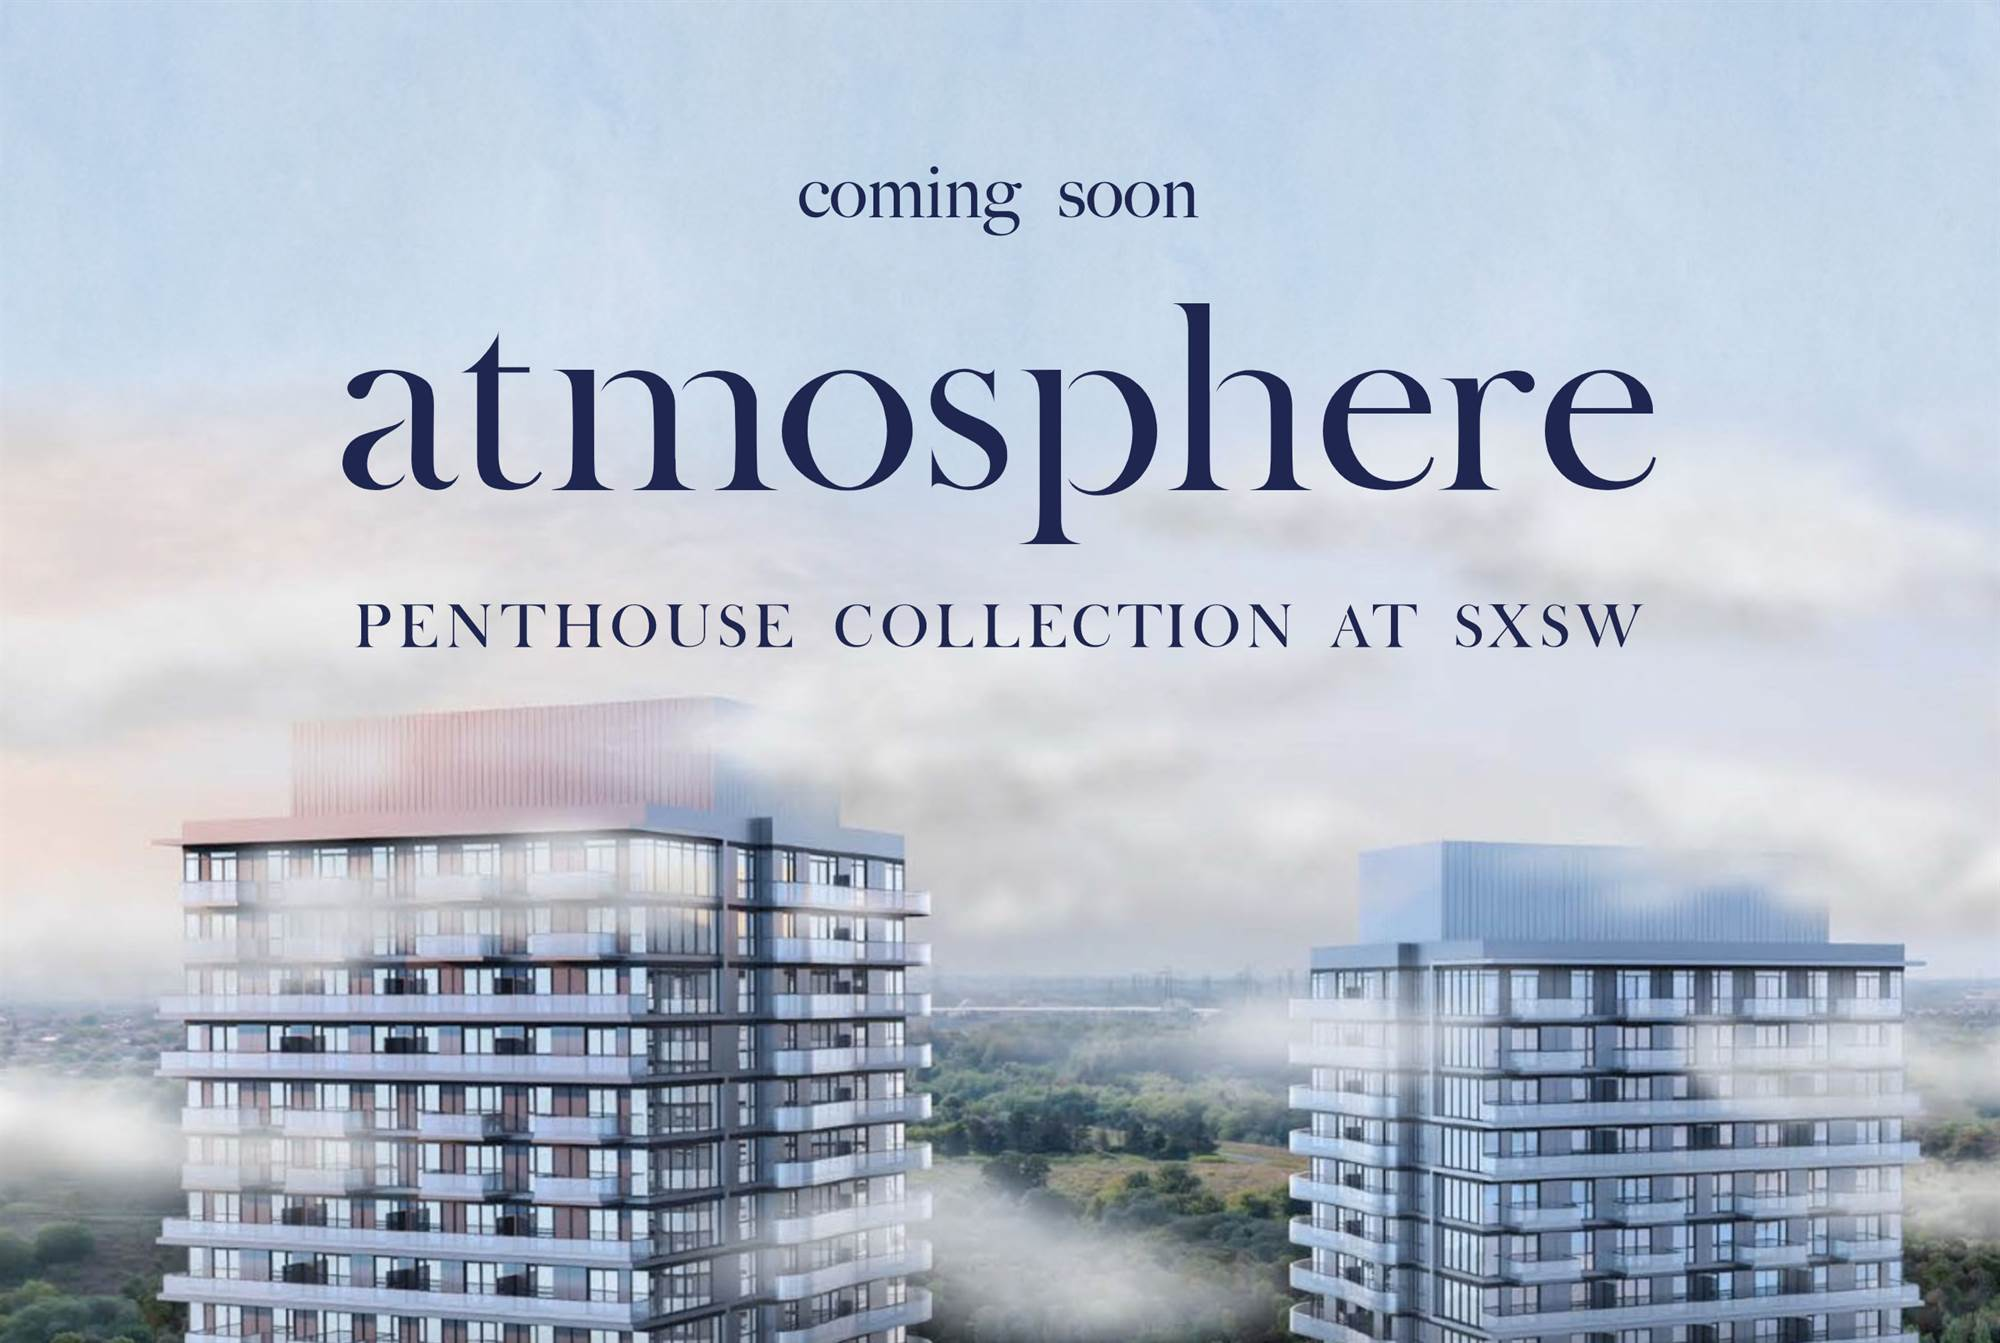 Atmosphere Penthouse Collection at SXSW photo 1